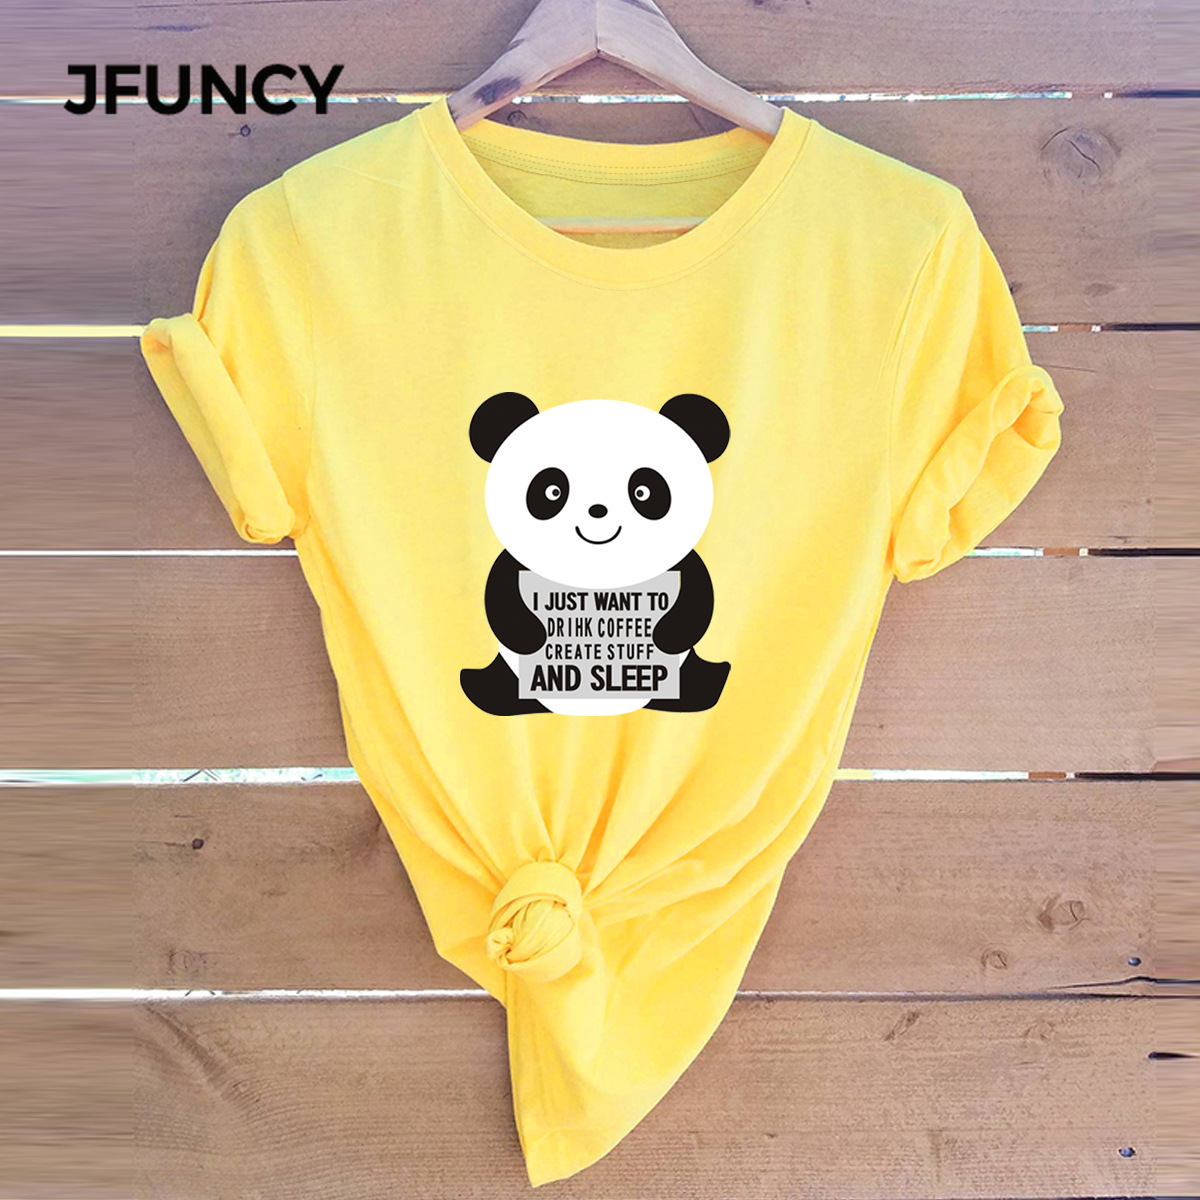 JFUNCY Plus Size Women Tshirts Cute Panda Summer 100% Cotton T-shirts Women Casual Tshirt Funny Harajuku Graphic Tee Female Tops